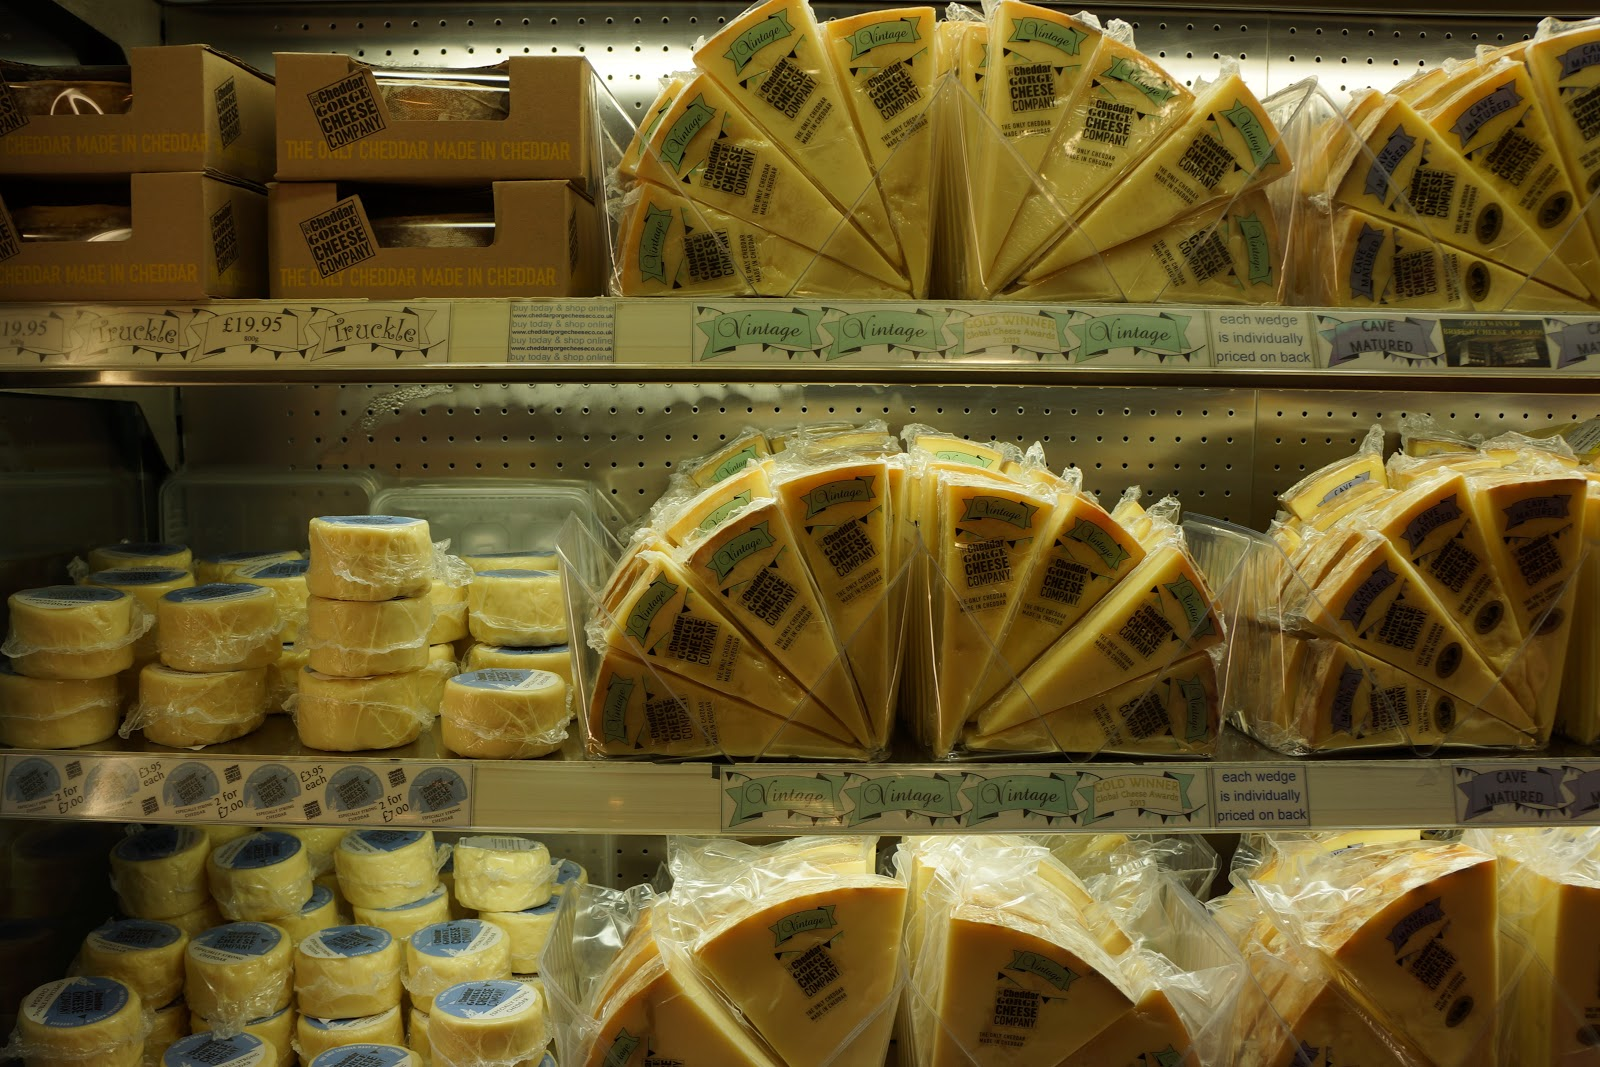 Cheese counter at Cheddar Gorge Cheese Company shop